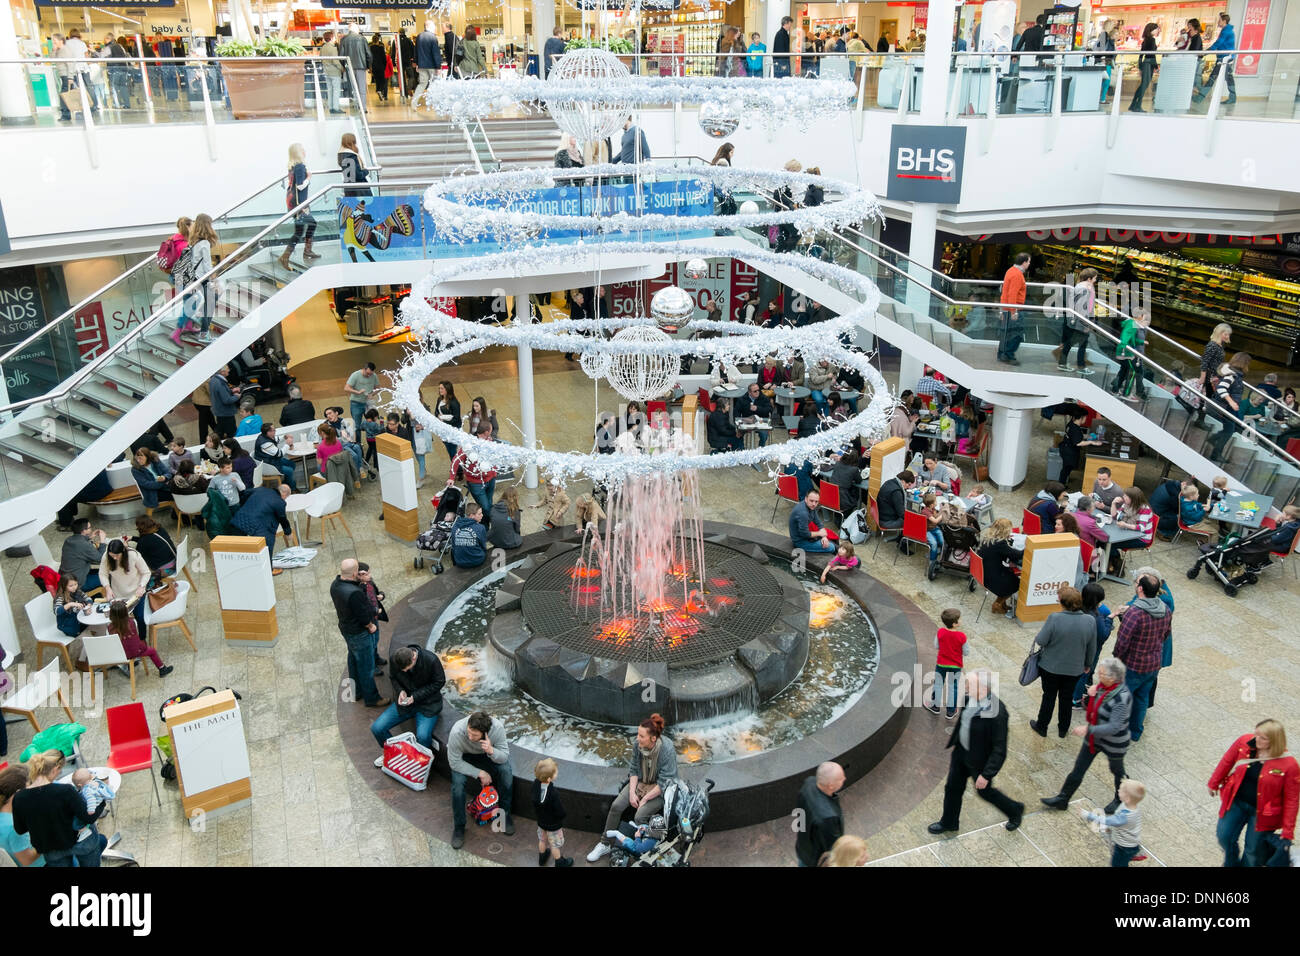 Cribbs Causeway shopping mall interior, Bristol, UK. - Stock Image